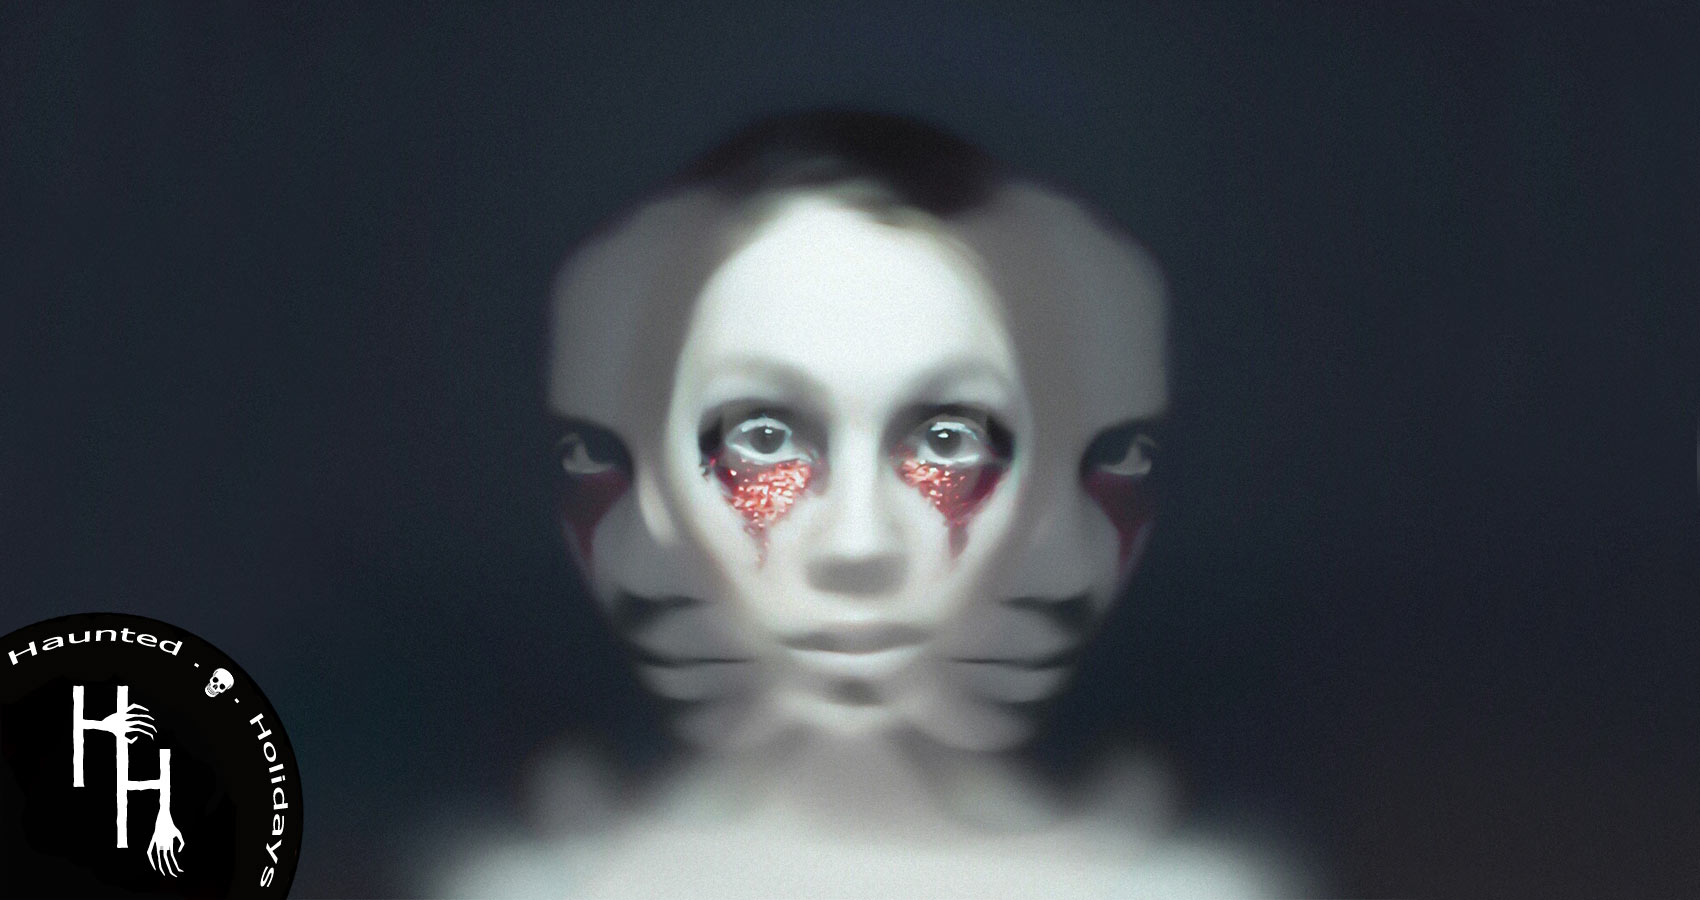 ONRYO II, poetry written by Annalyn Neo Celeste at Spillwords.com